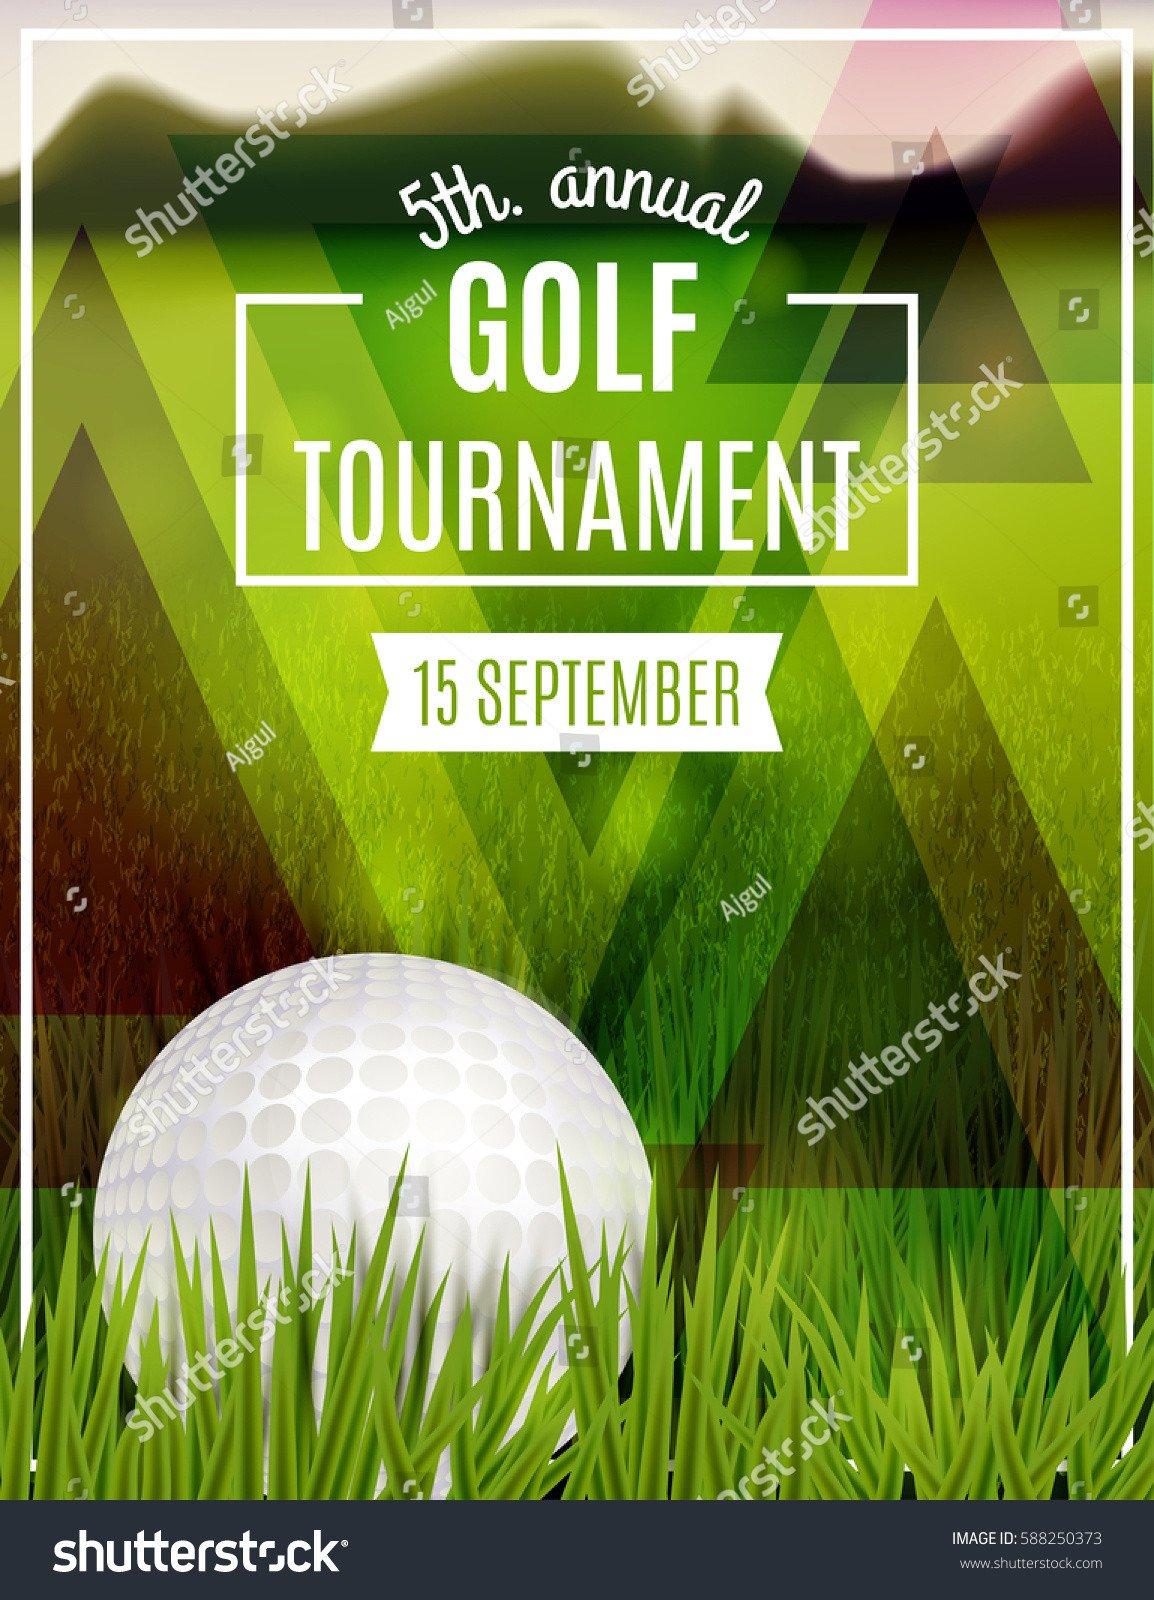 Golf tournament Flyer Templates Golf tournament Poster Template Flyer Design Stock Vector